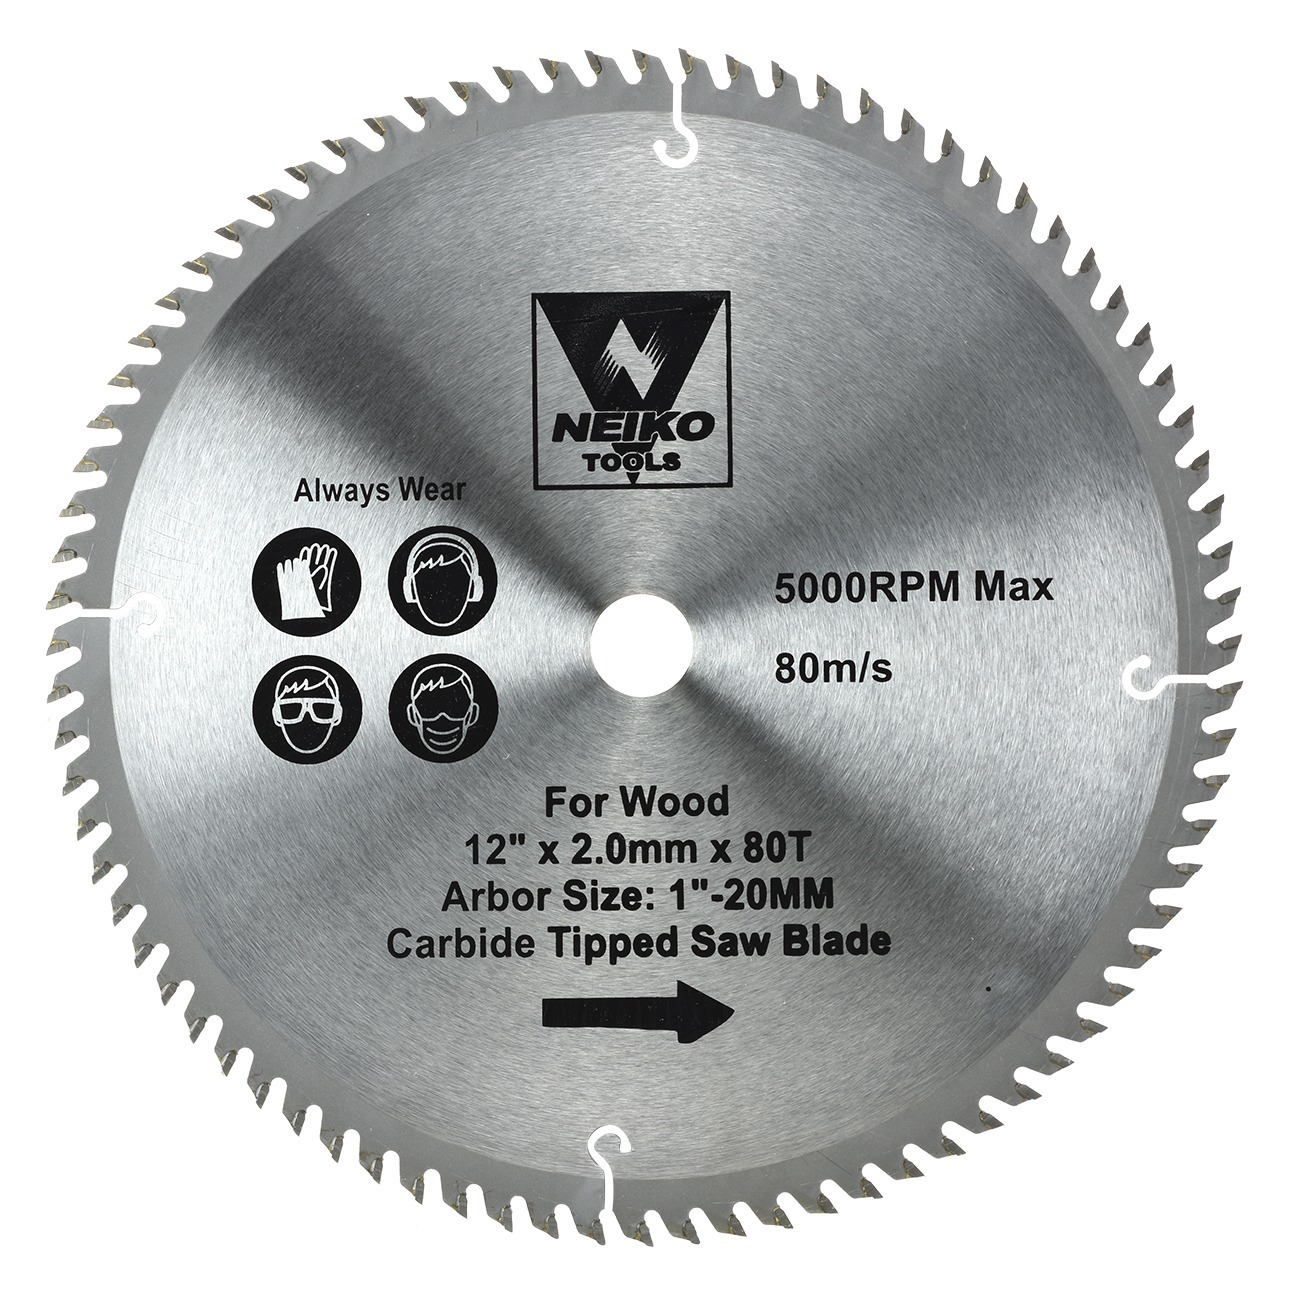 Neiko 10768A 12-Inch Carbide Tipped Miter Saw Blade | 80 Tooth